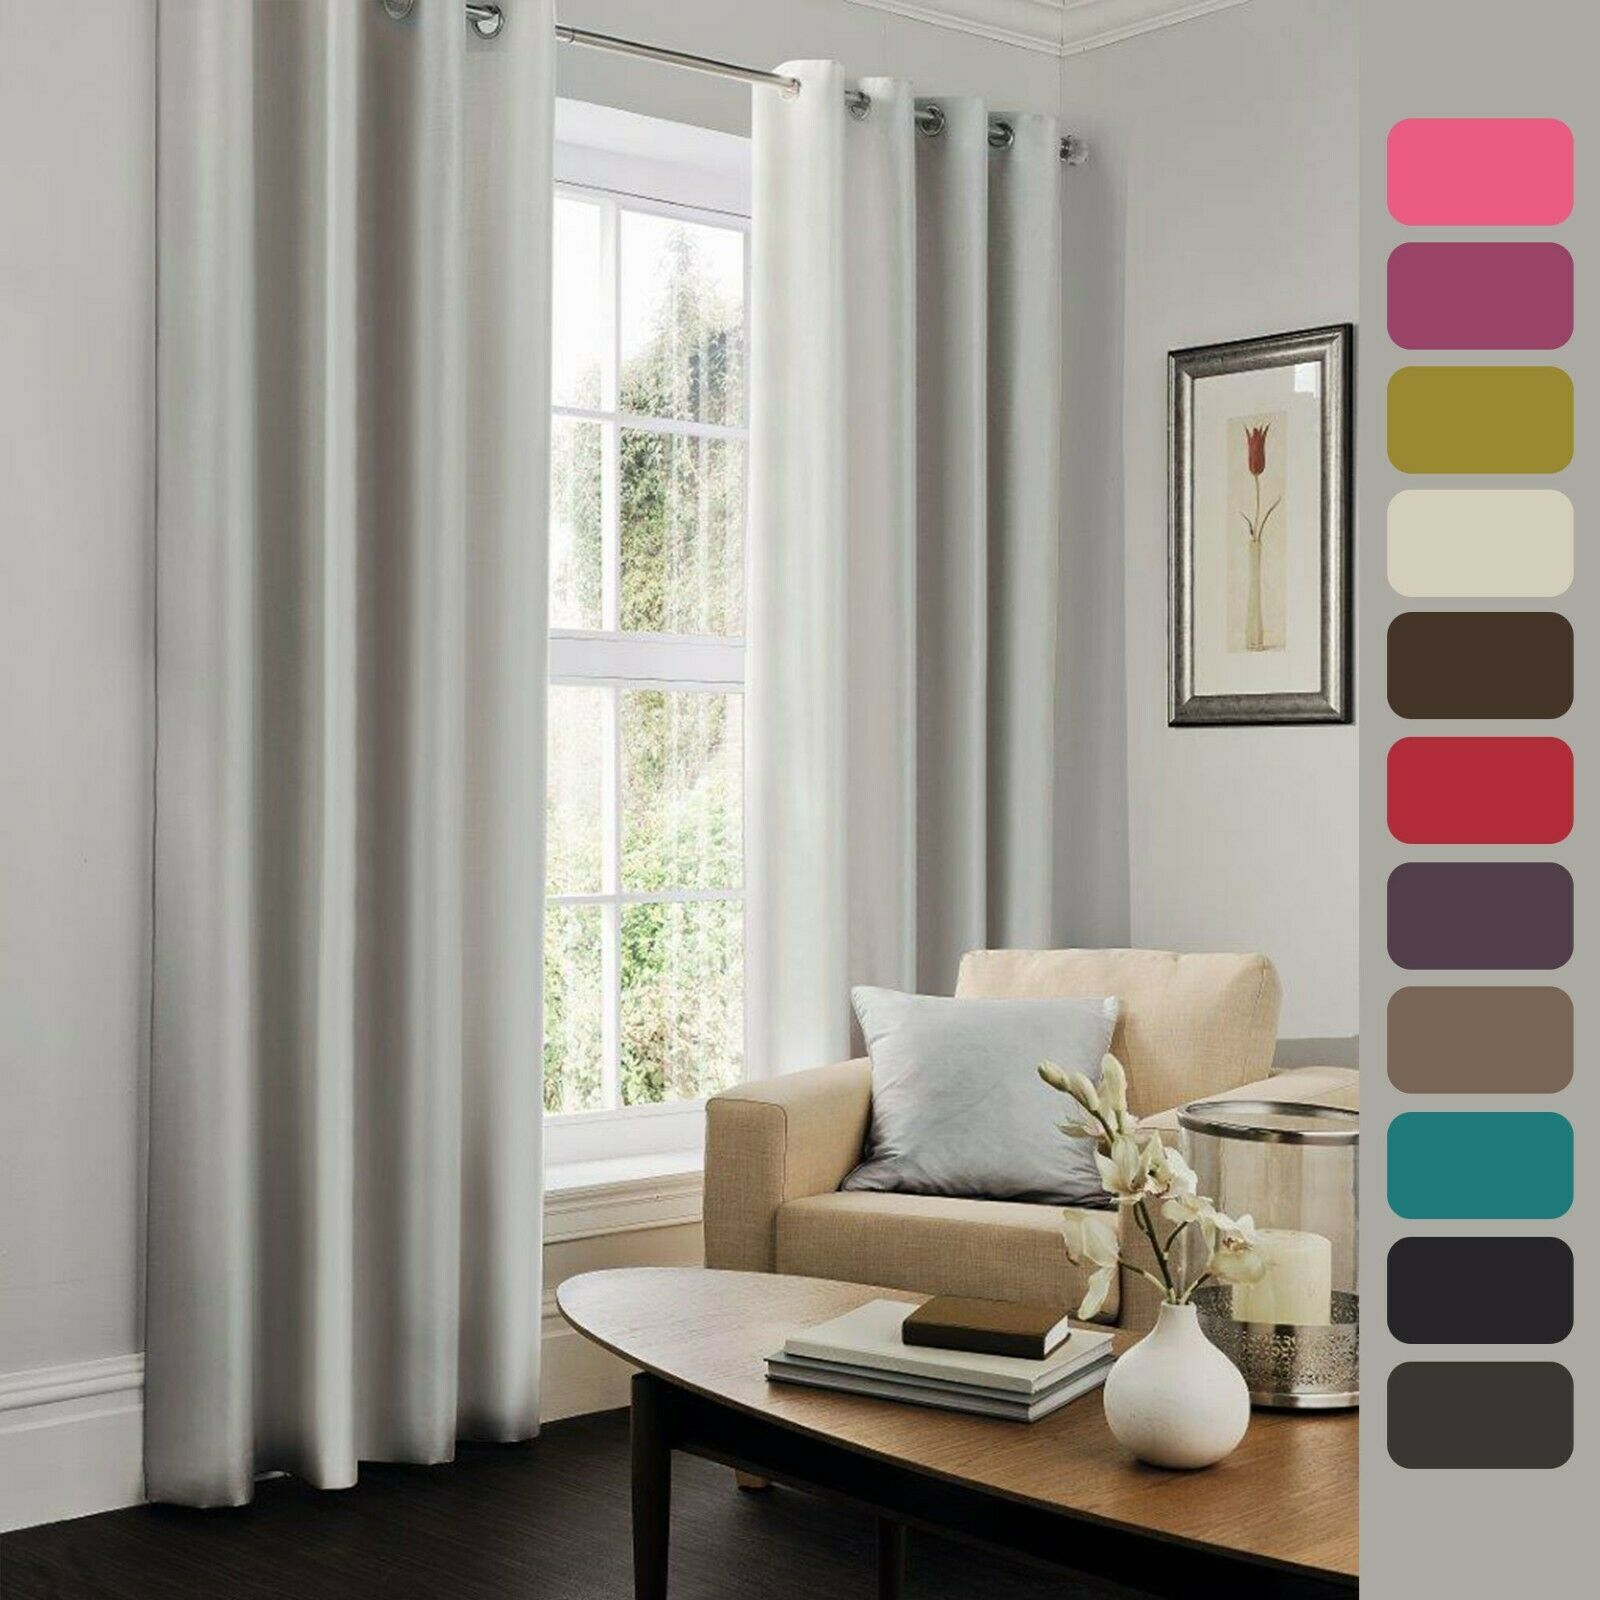 Details About Luxury Curtains Living Room Bedroom All Size Plain Faux Silk Eyelet Door